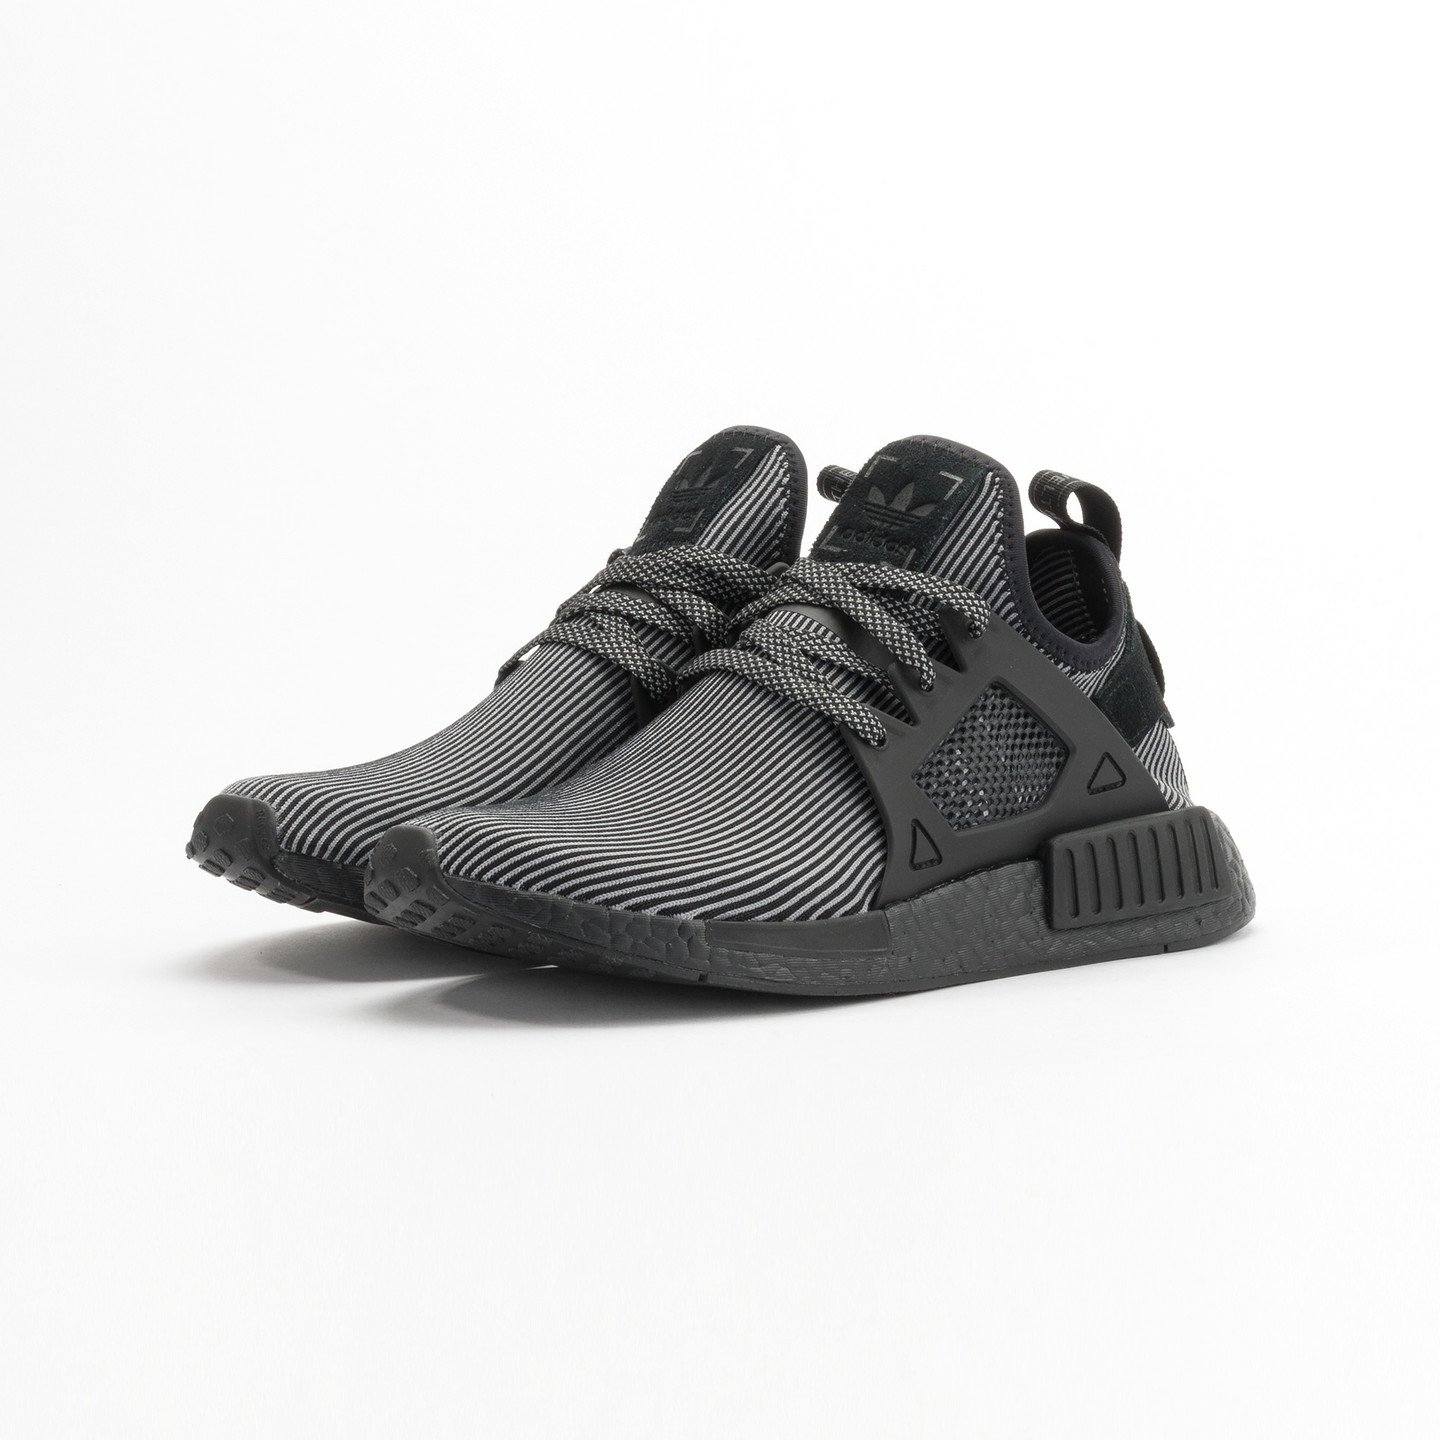 Adidas NMD XR1 Primeknit Core Black / Core Black / Running White S32211-40